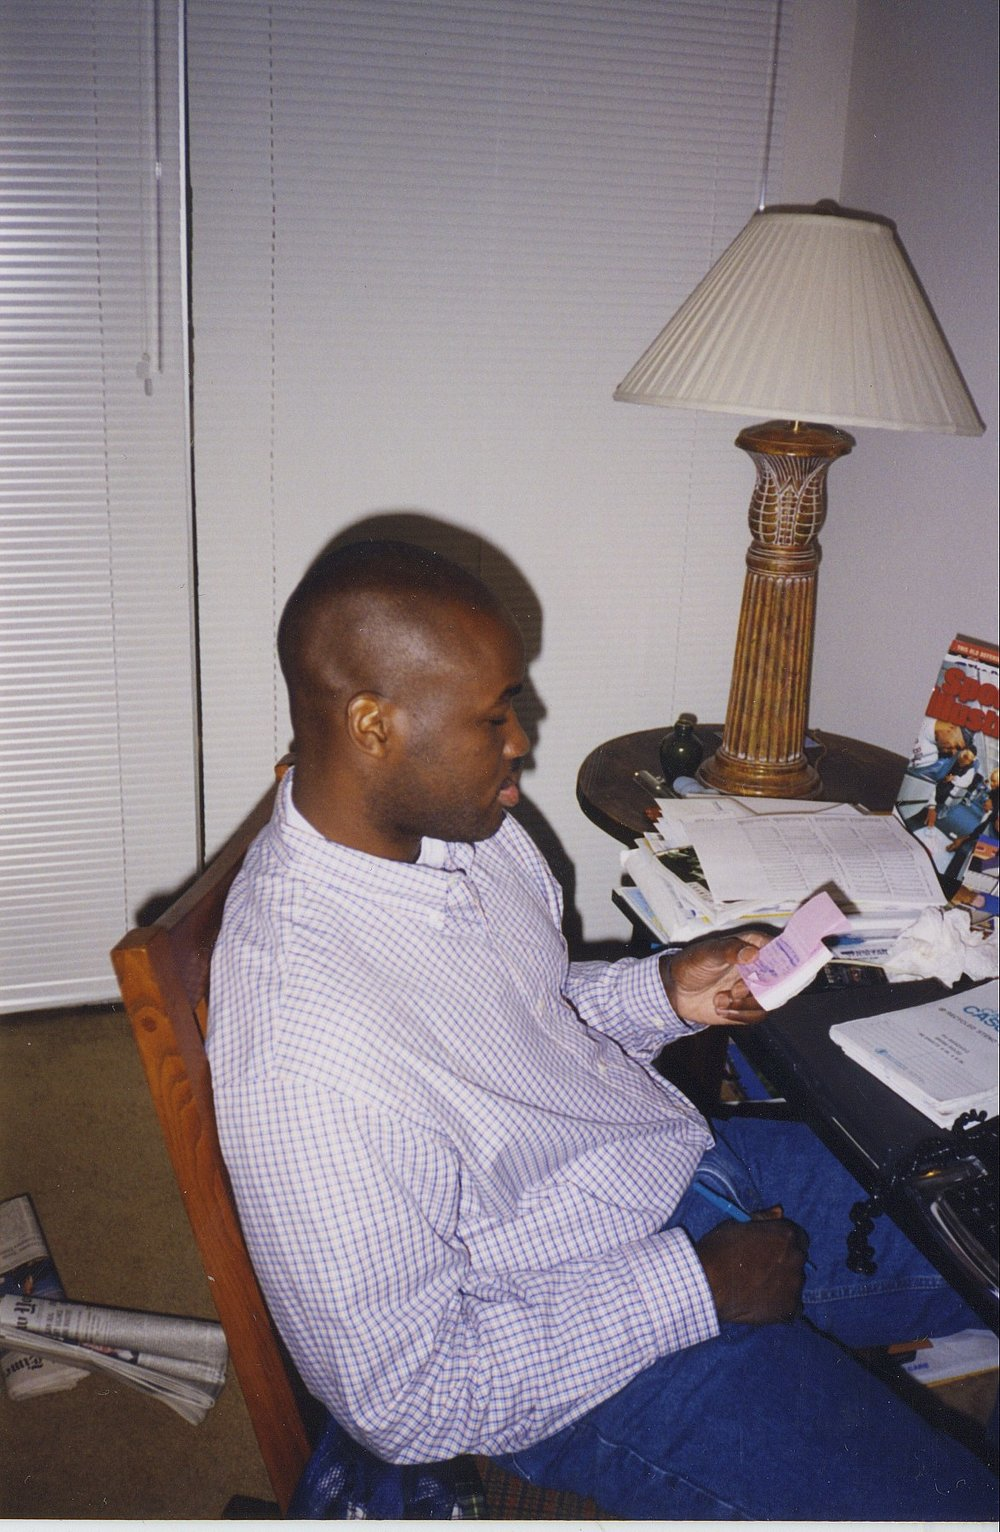 I'm checking out my to-do list at my home office in Seattle, where I lived from 1997 to 2002.